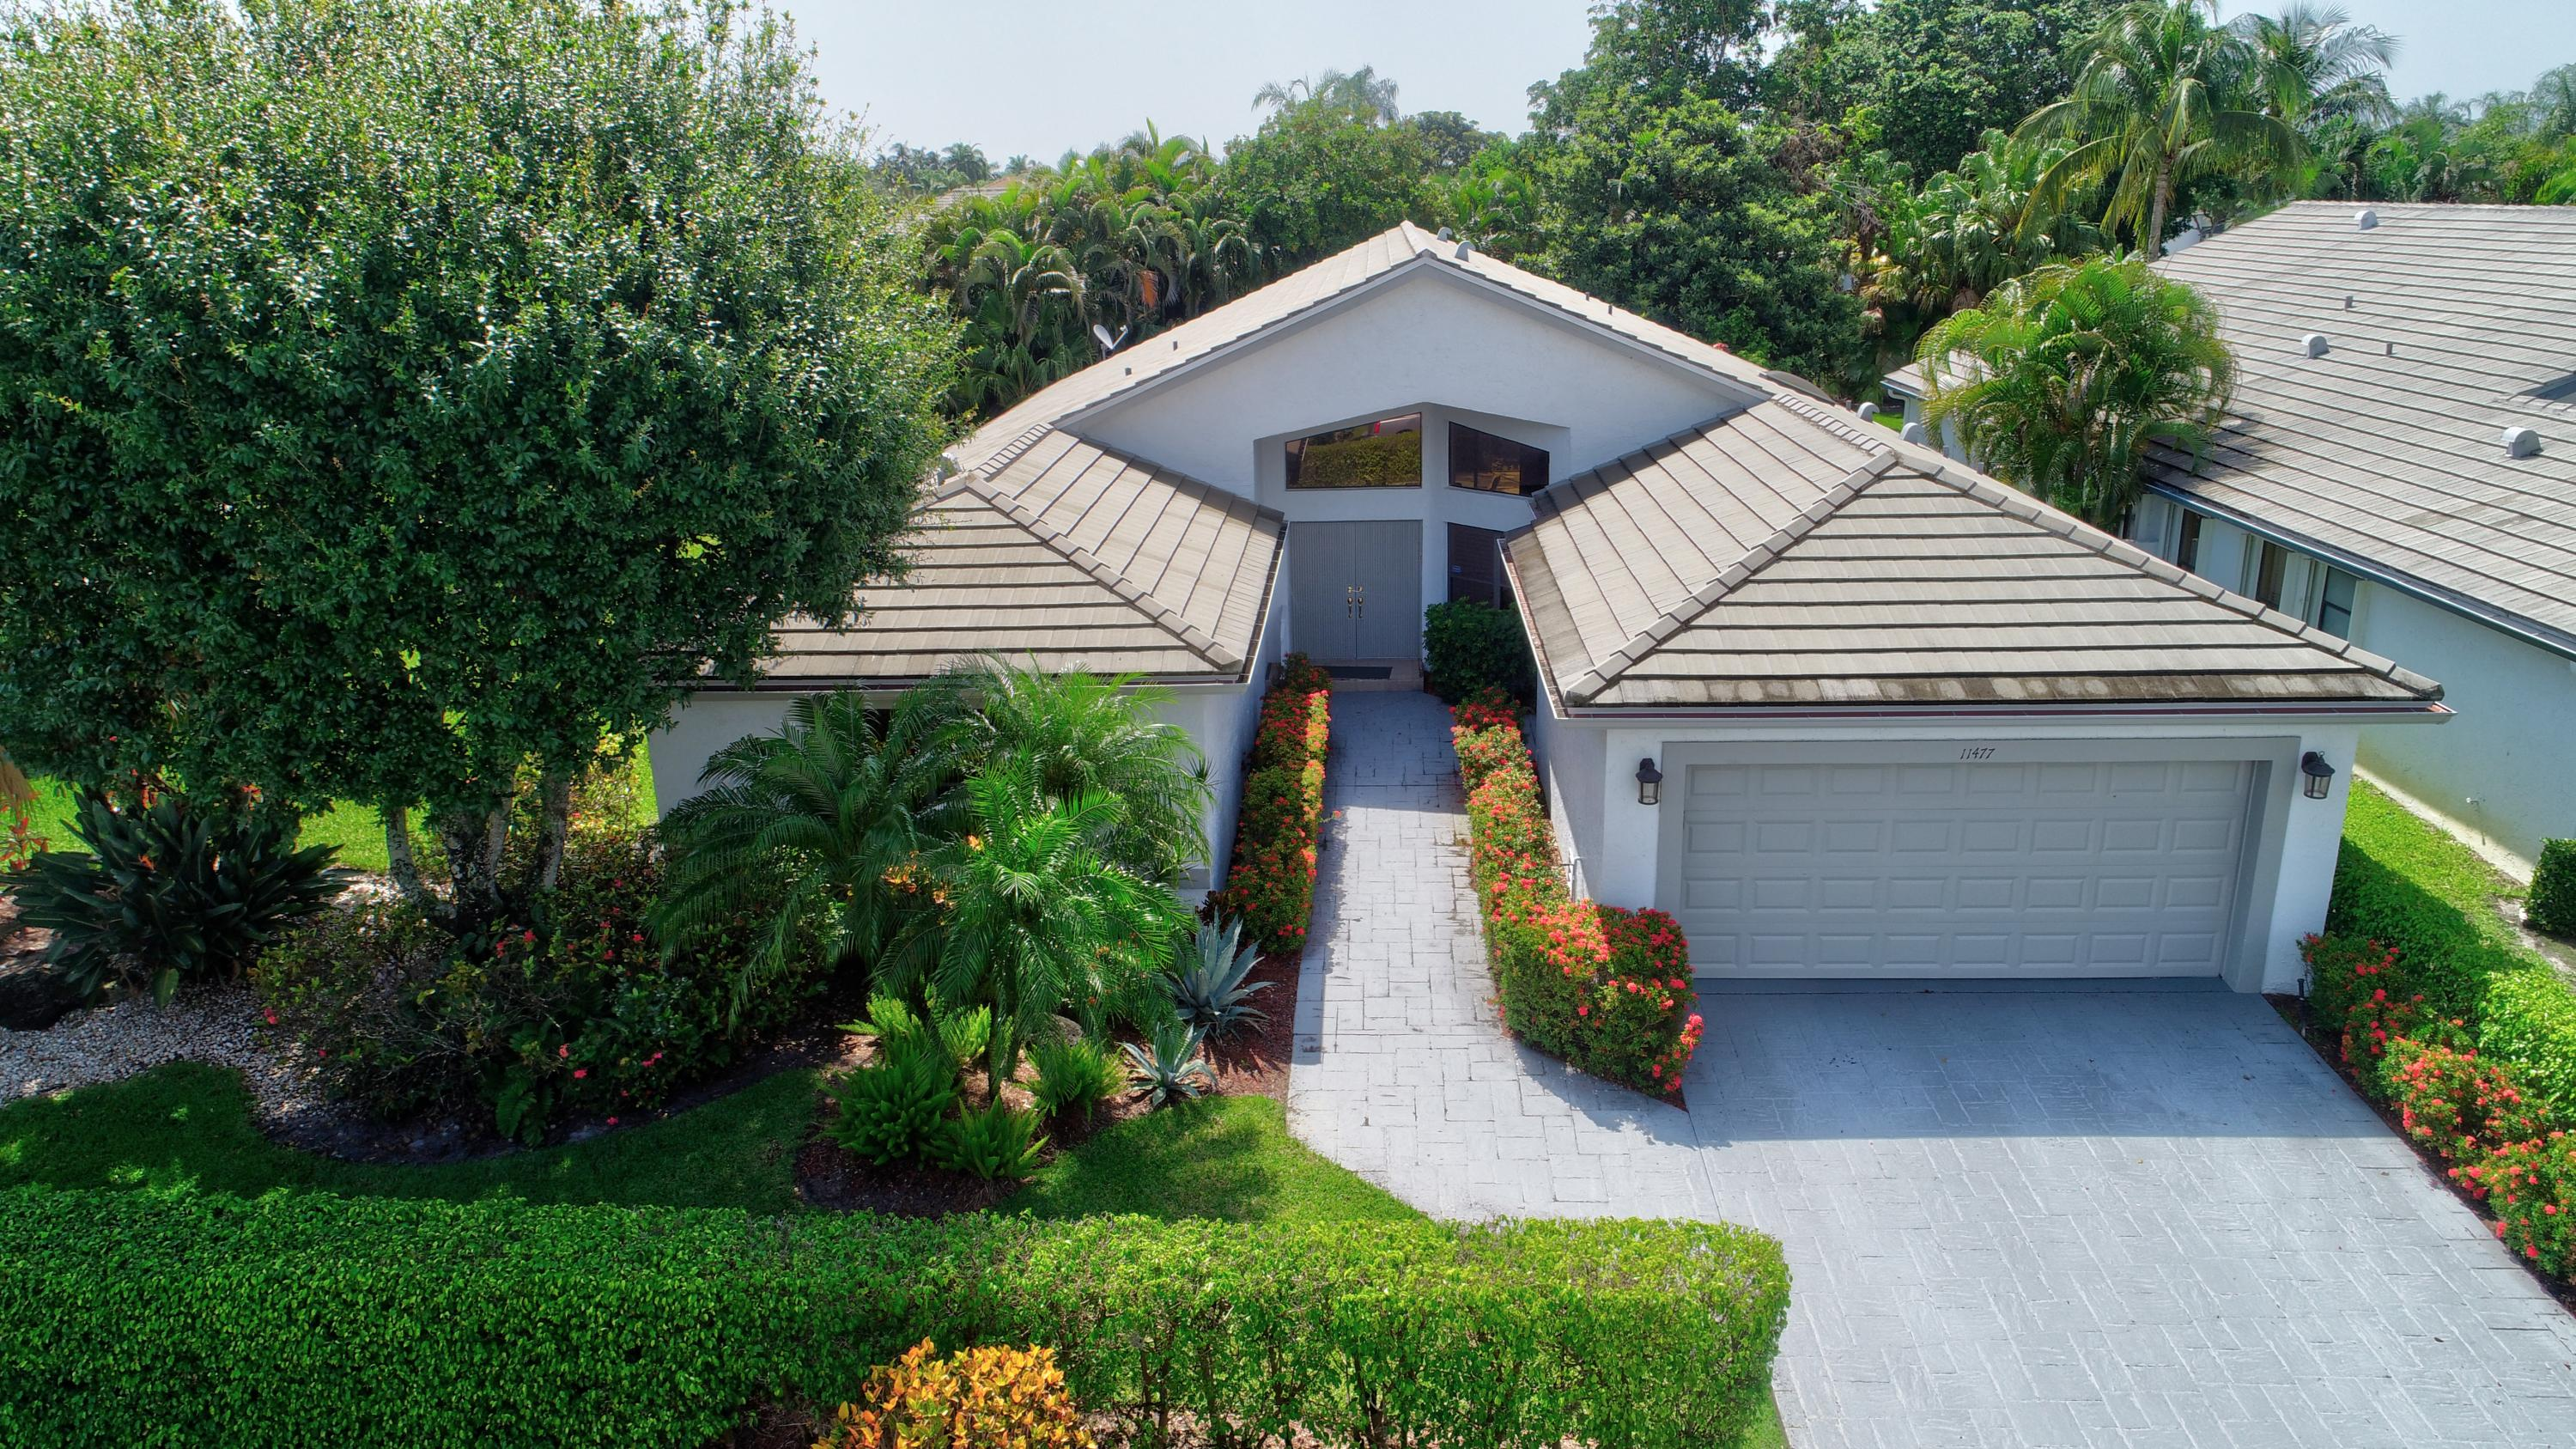 Details for 11477 Victoria Circle, Boynton Beach, FL 33437